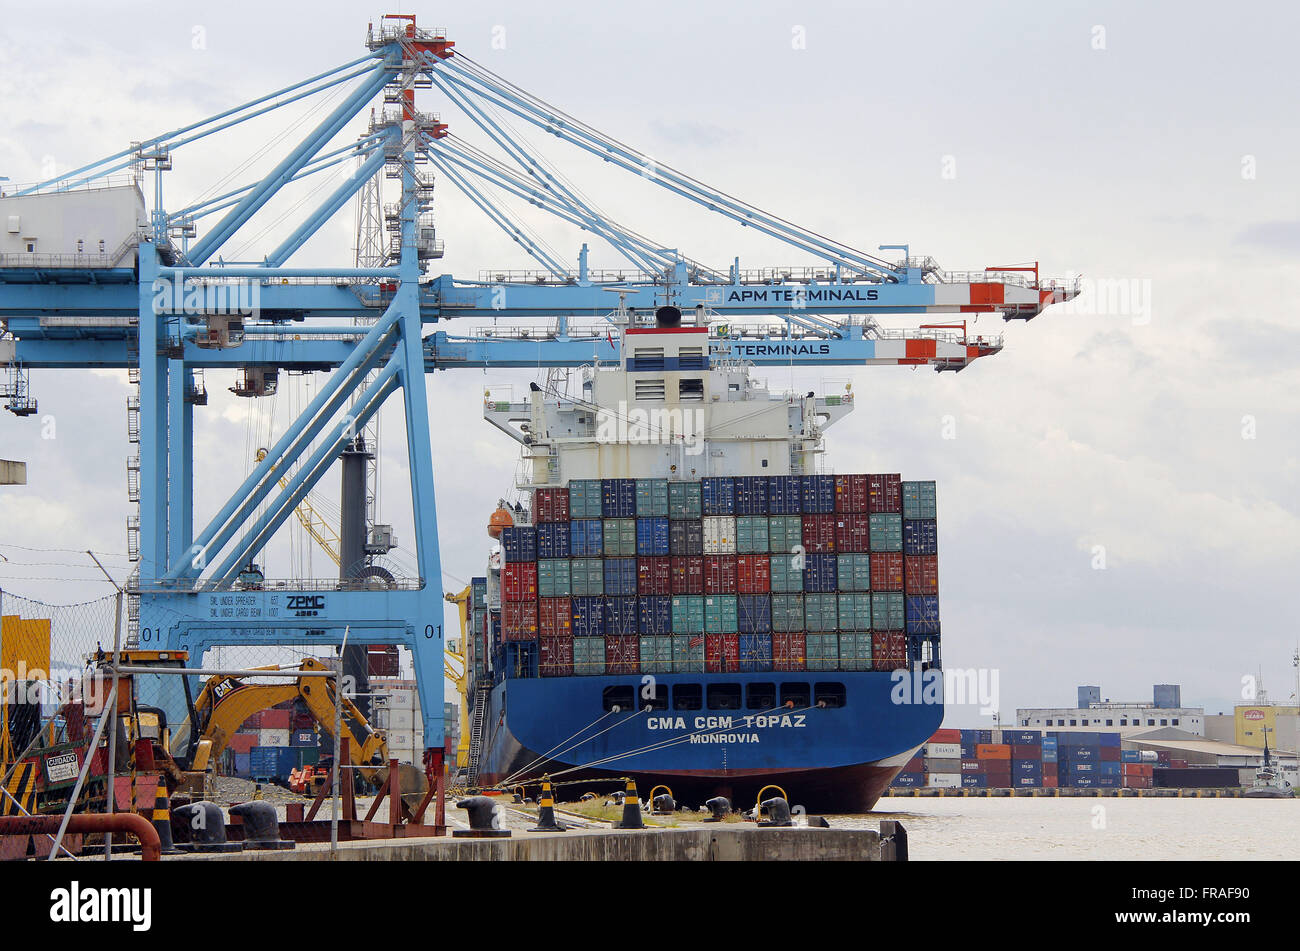 Liberian cargo ship - CMA CGM TOPAZ, MONROVIA - being loaded with containers in Port I - Stock Image